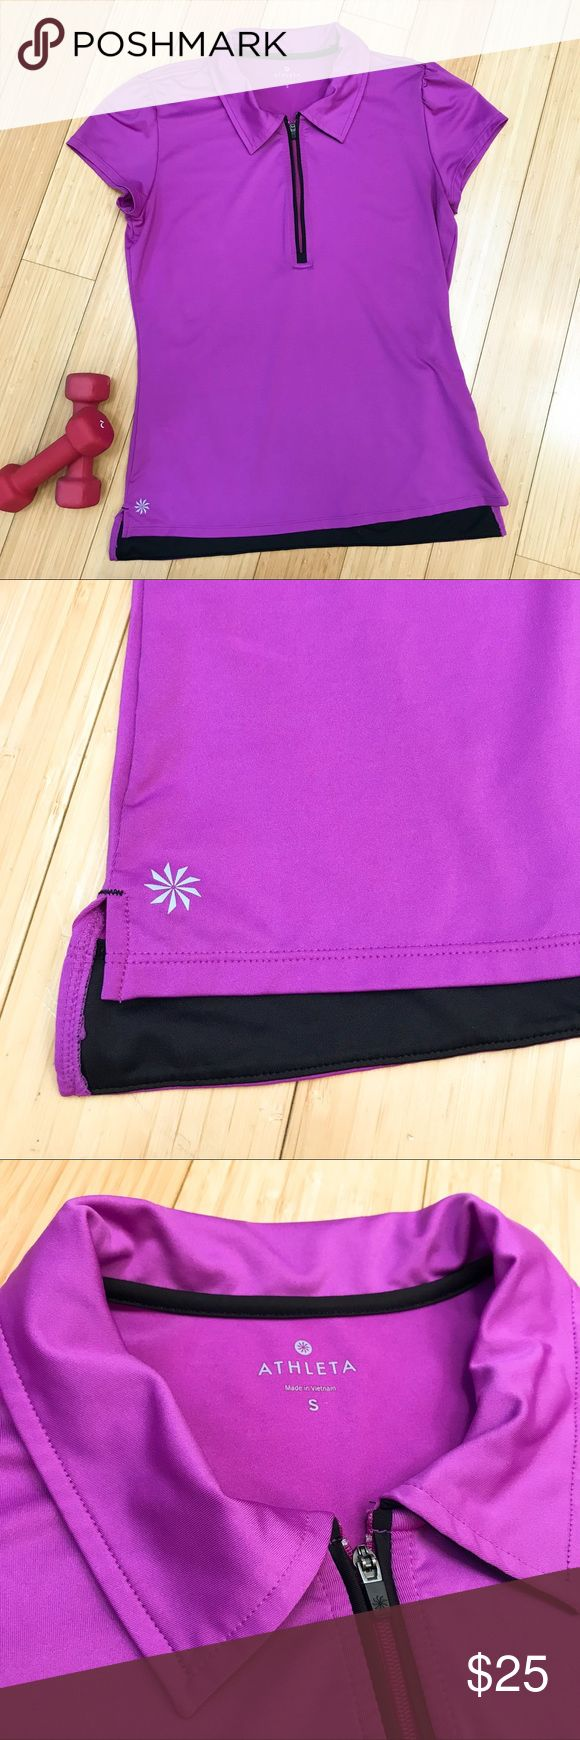 ATHLETA purple polo shirt, S. Perfect purple and black polo style short sleeve shirt by Athleta, size small. Quarter zip, collar. Bust measures 18 inches across unstretched, length about 24 inches. Perfect condition with no flaws. Would be excellent for golf or tennis. Athleta Tops Tees - Short Sleeve